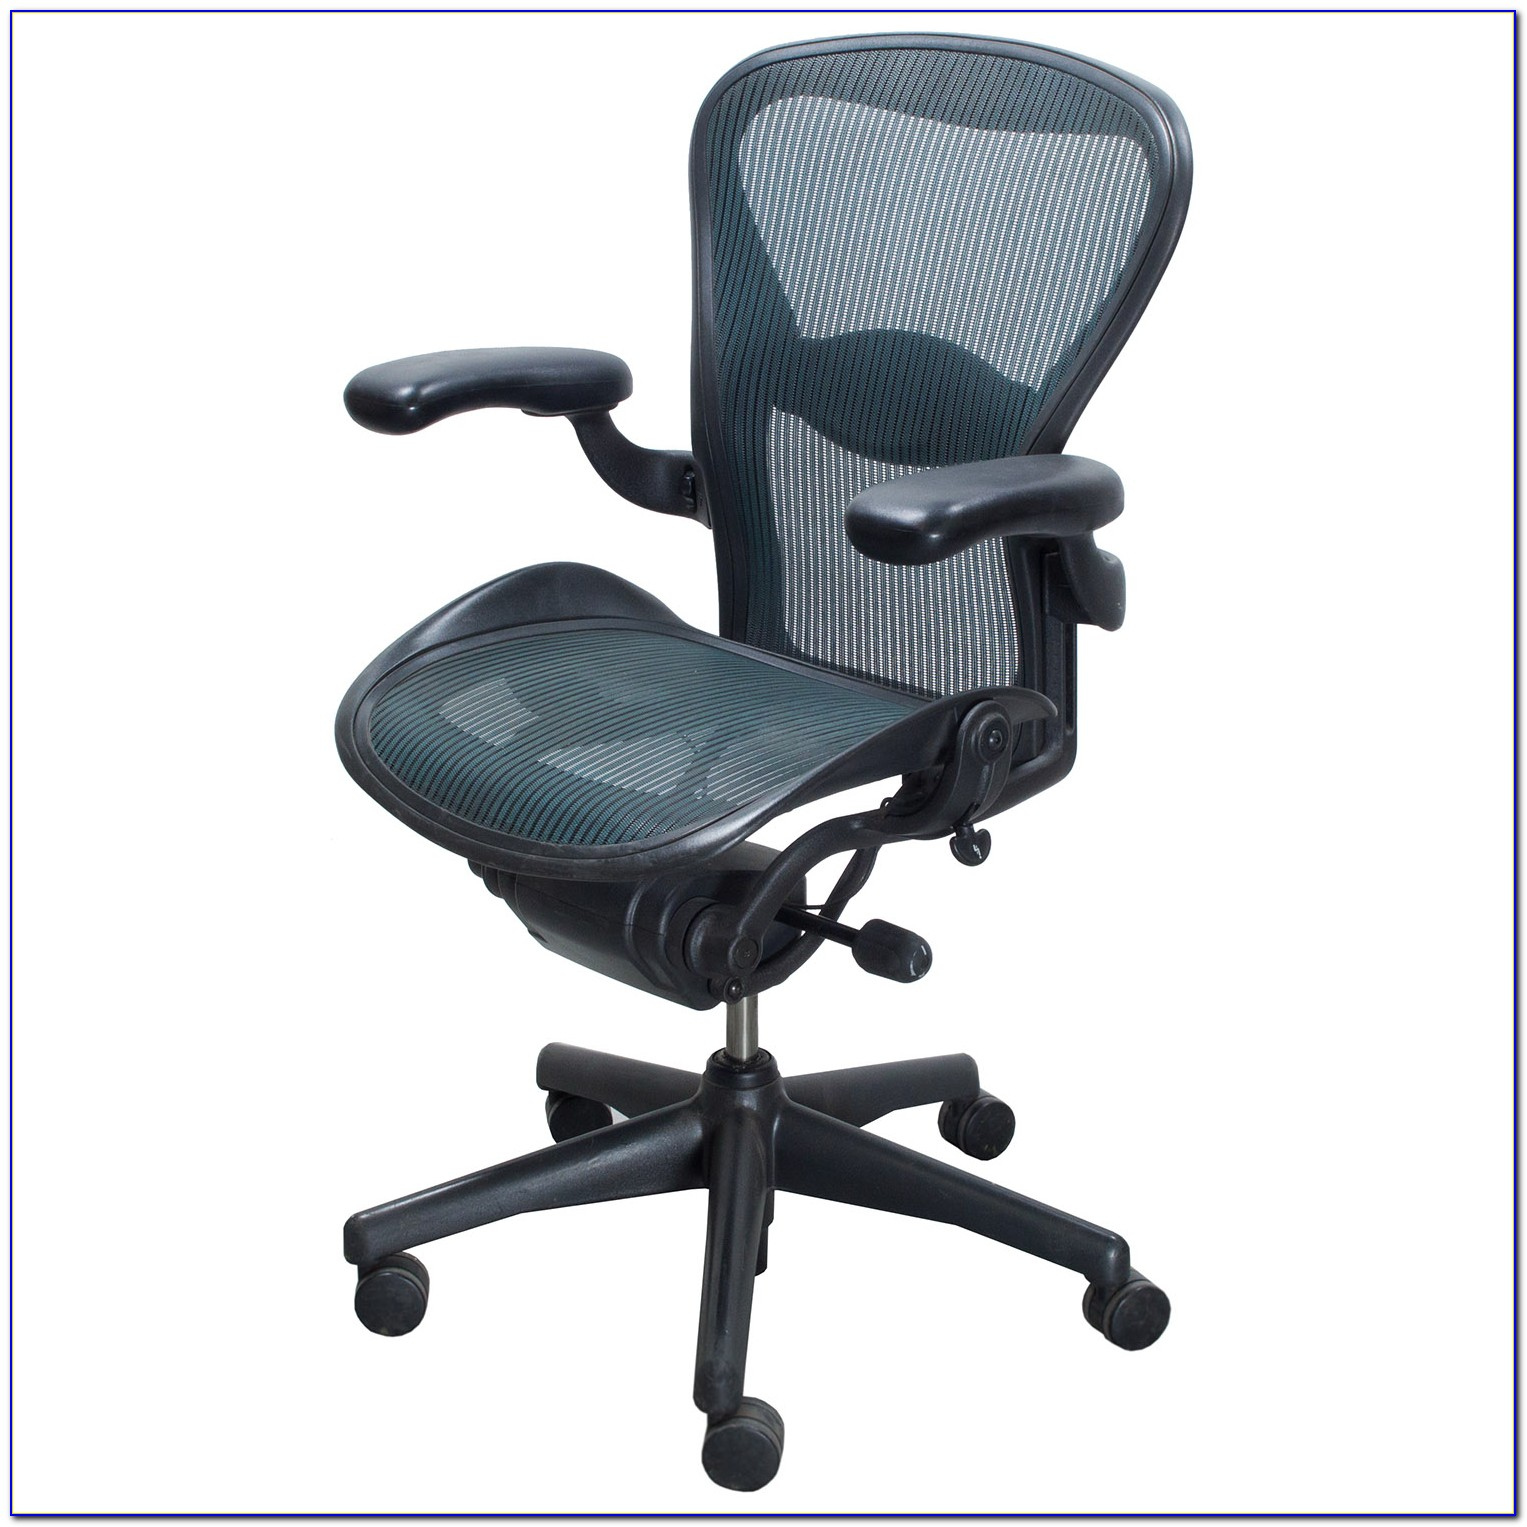 Aeron Chair By Herman Miller Canada